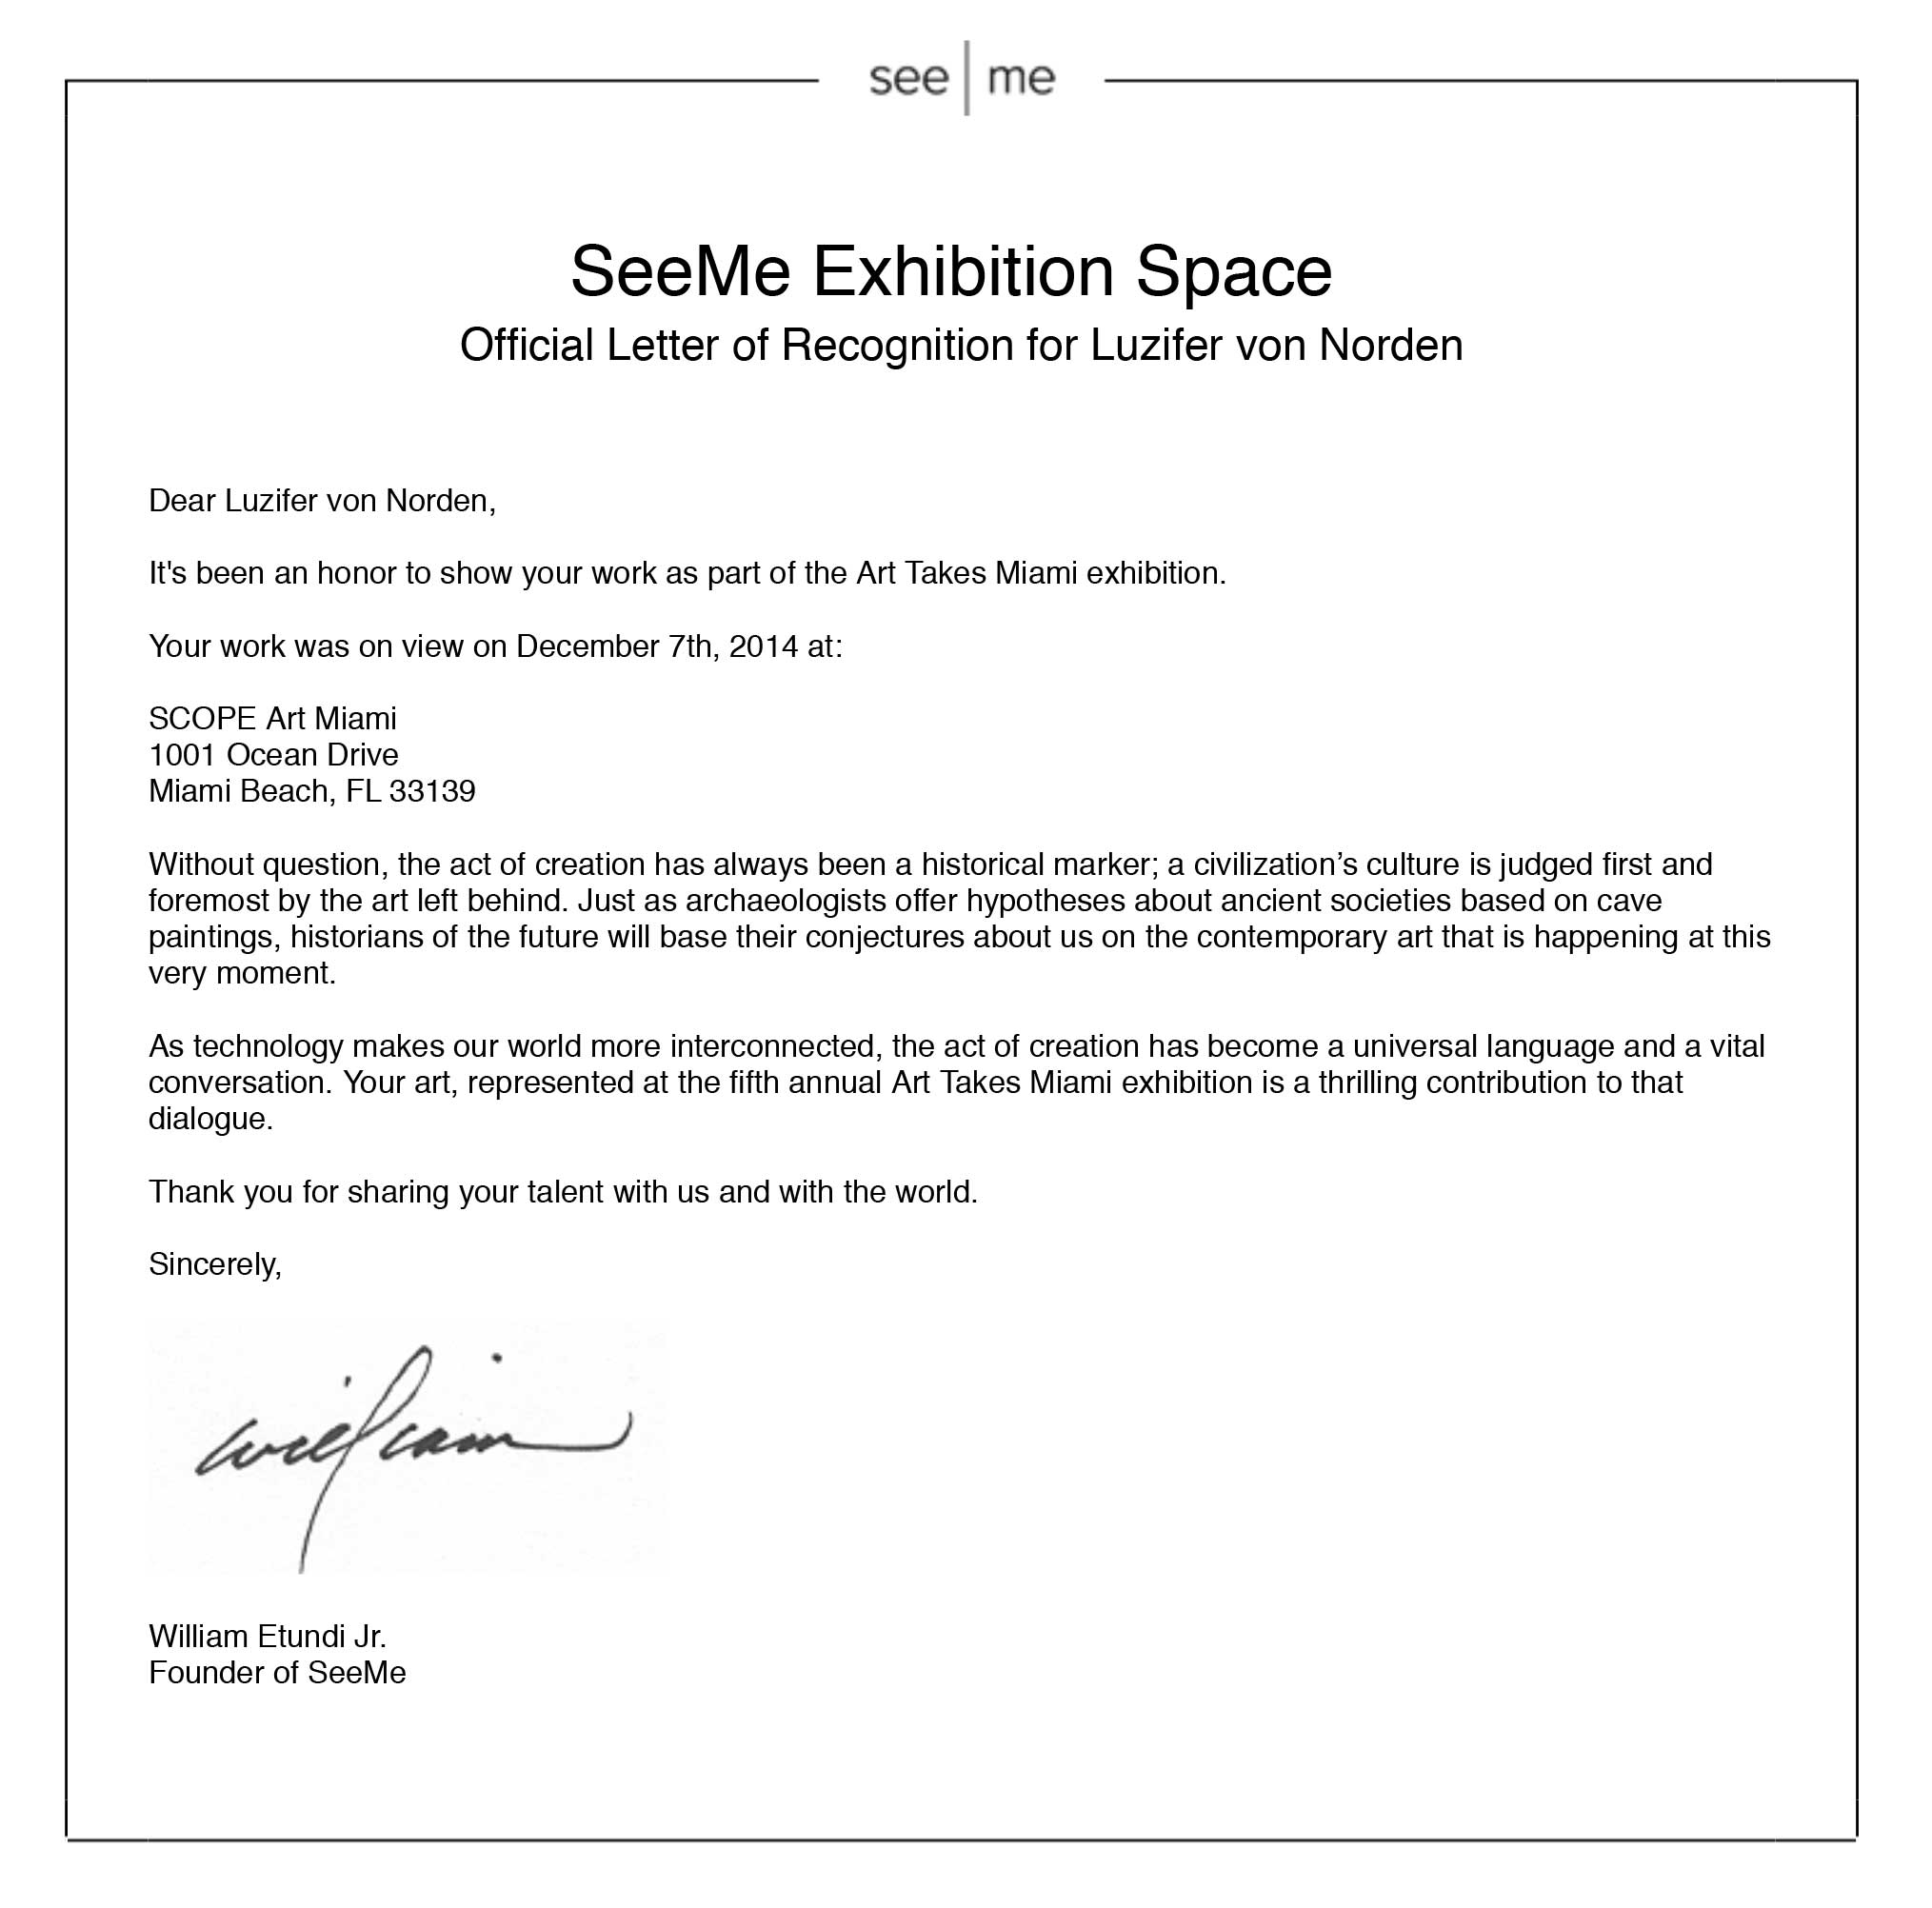 Luzifer von Norden your Letter of Recognition for participating in Art Takes Miami